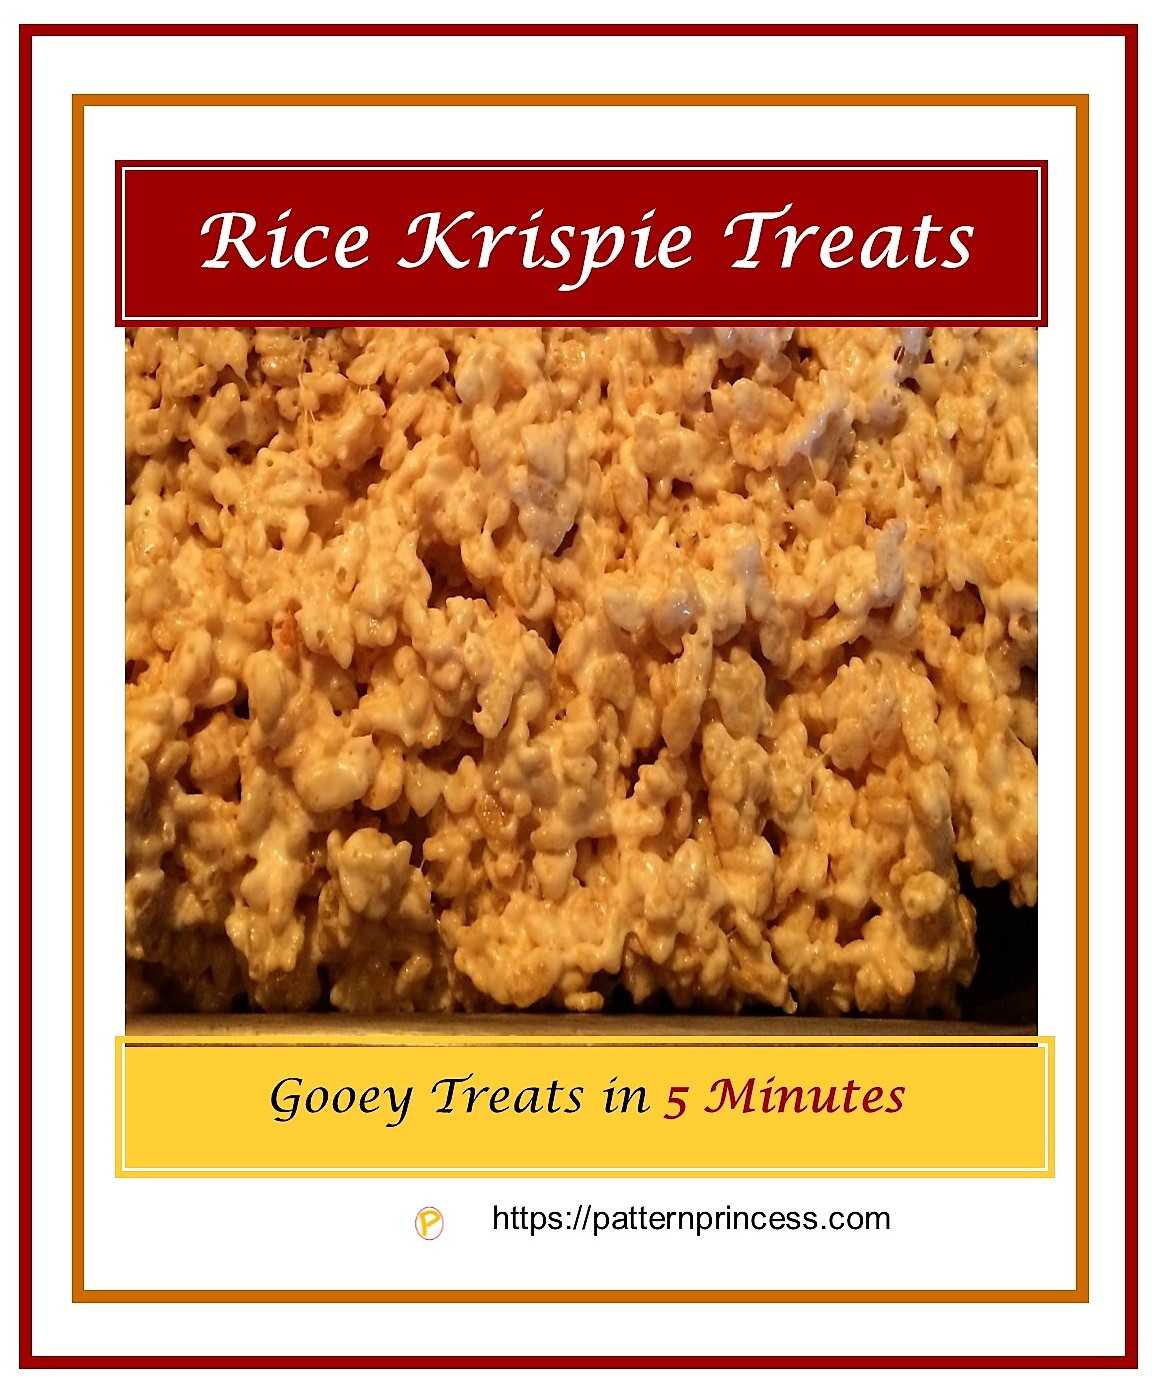 Rice Krispie Treats 1